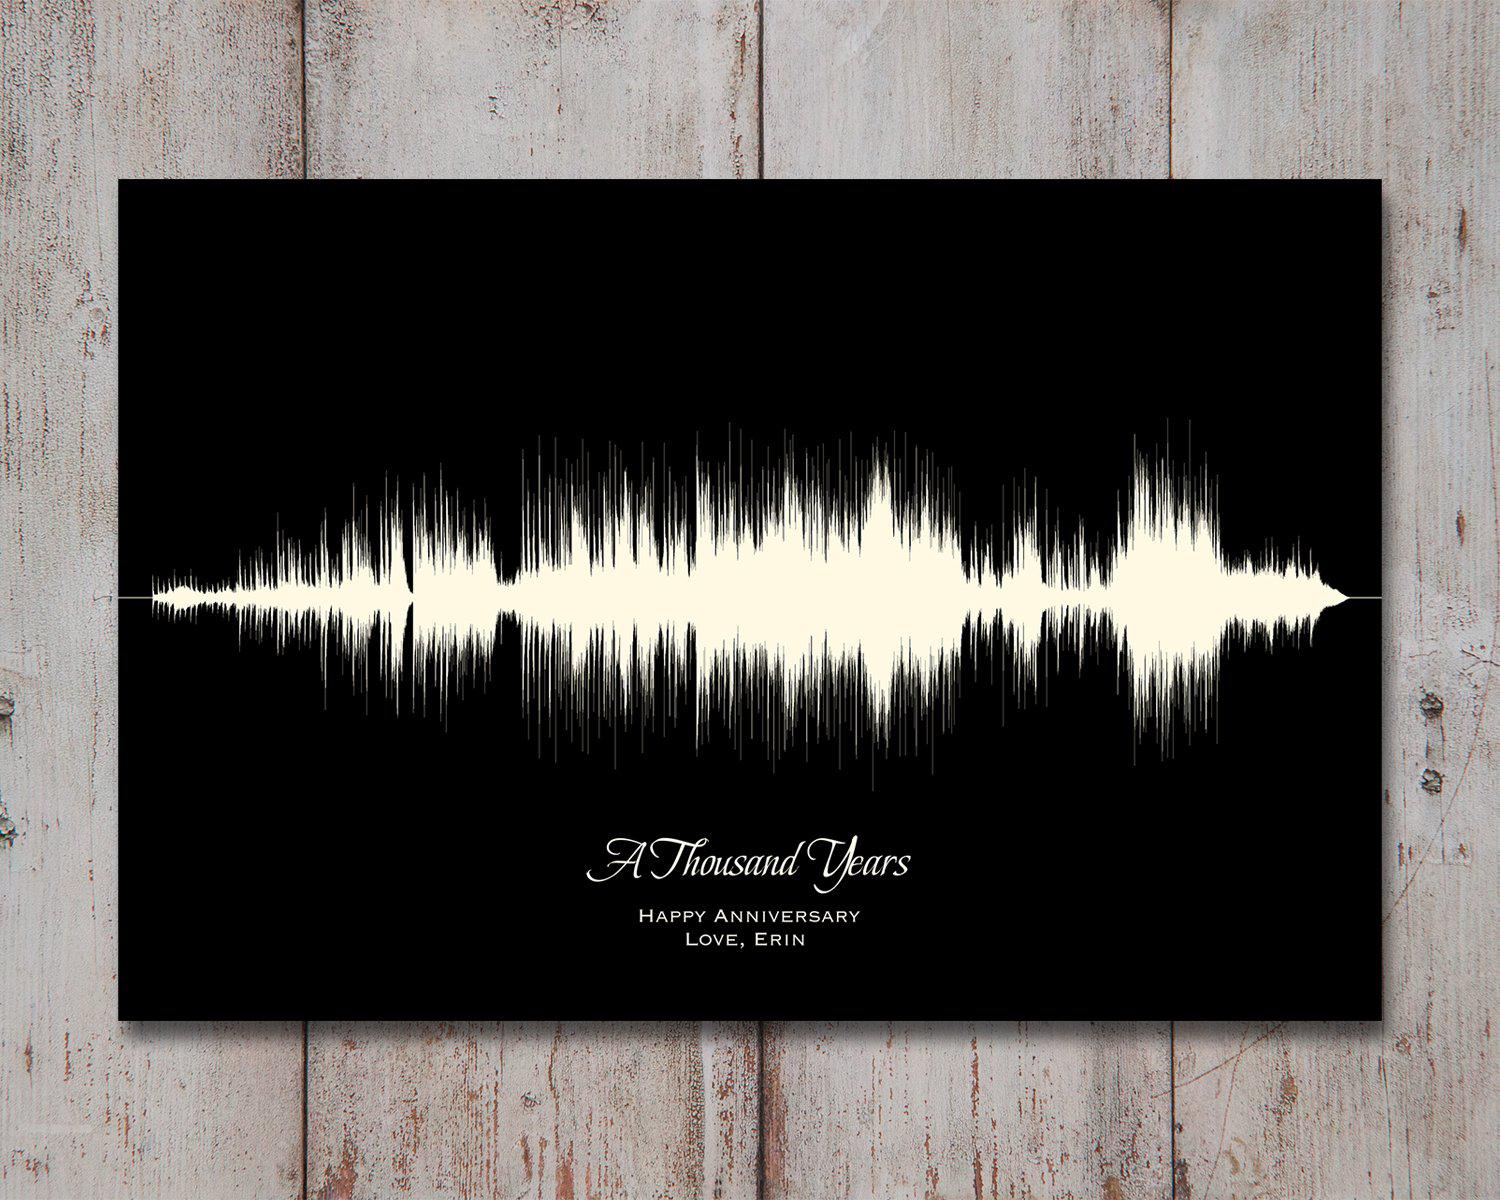 Large Song Lyric Wall Art - Custom Sound Wave, 1st Anniversary Gift - Artsy Voiceprint